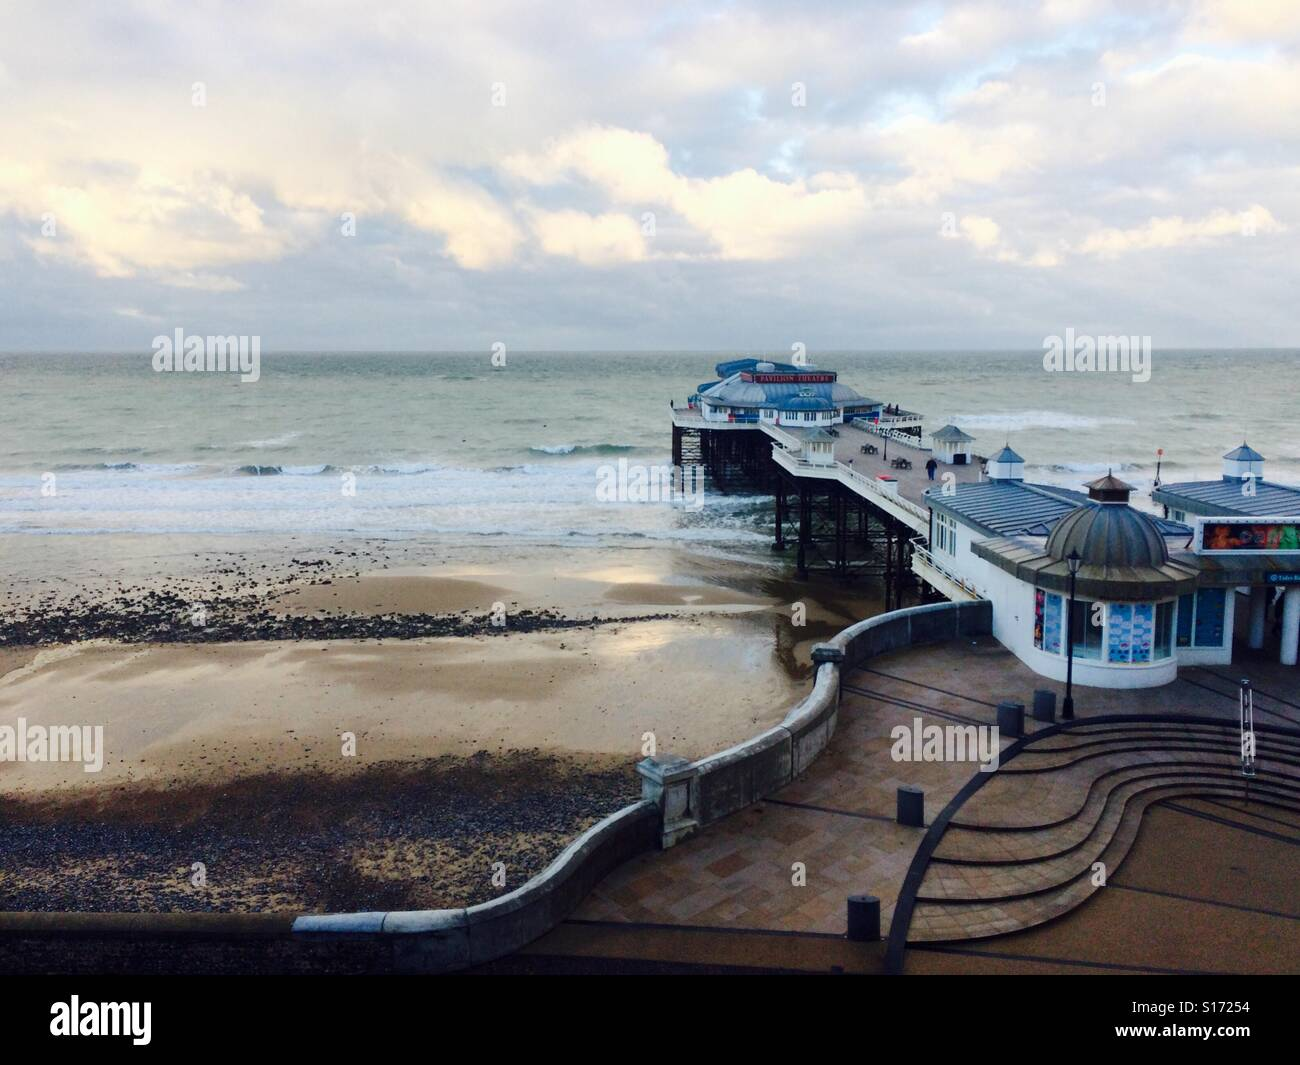 A cold windy October day in Cromer - Stock Image